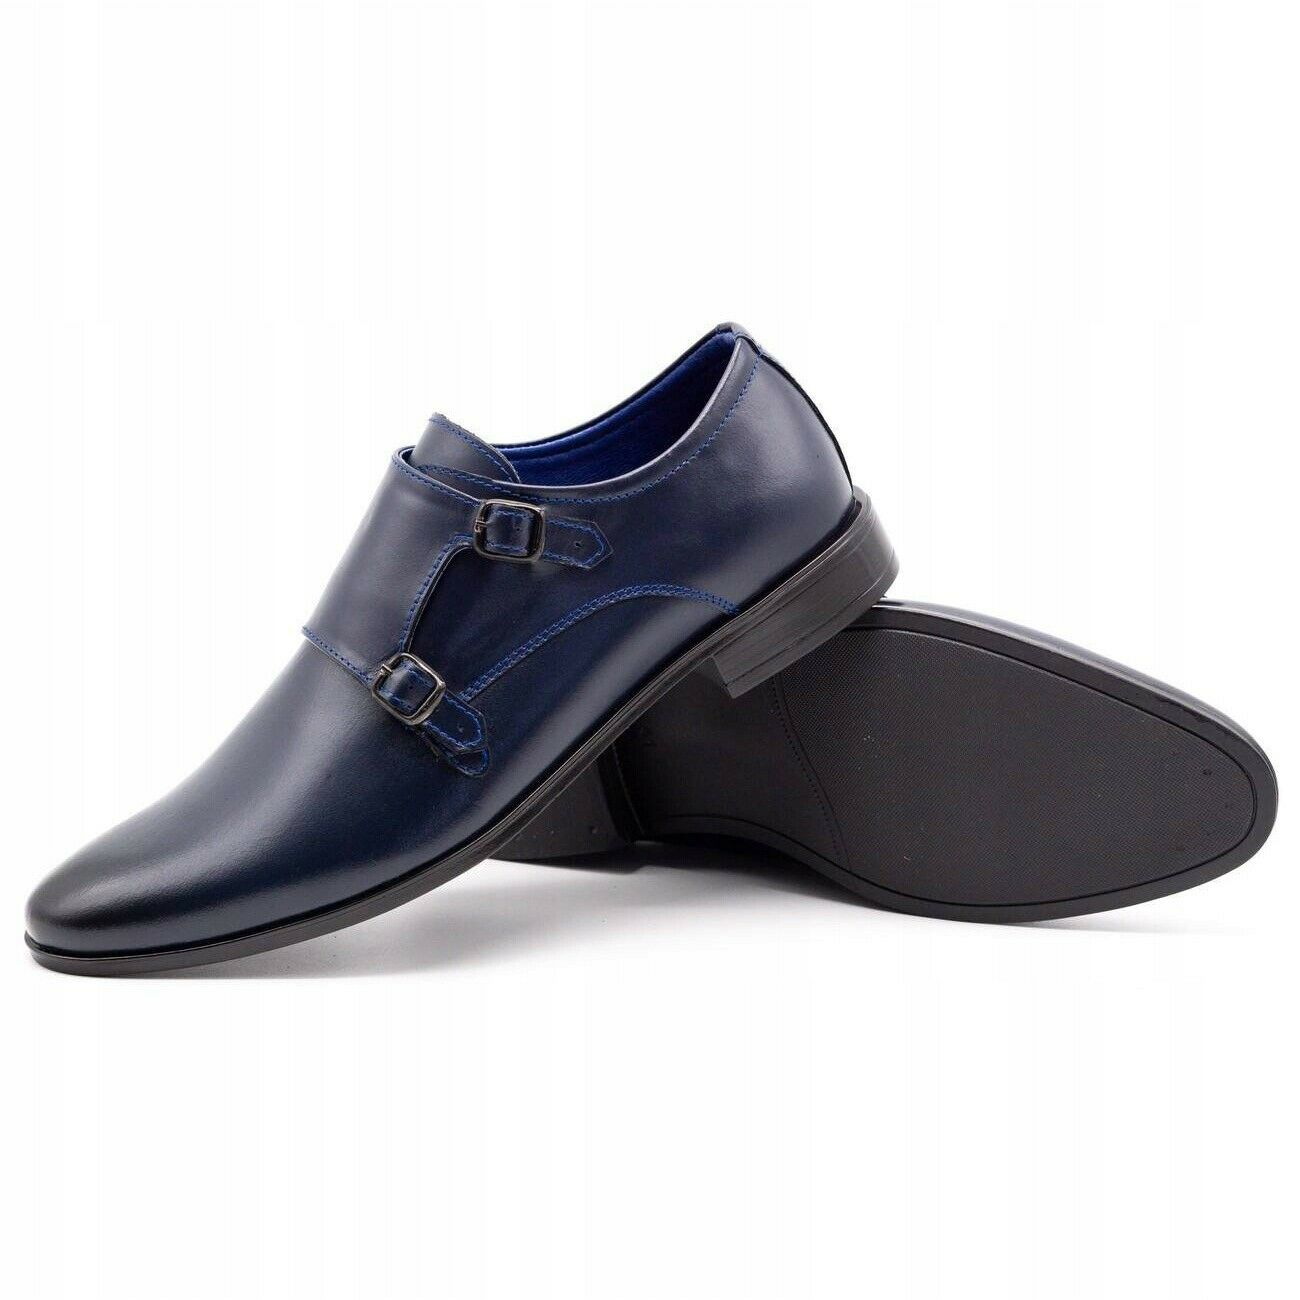 Lukas Leather formal shoes Monki 287LU navy blue